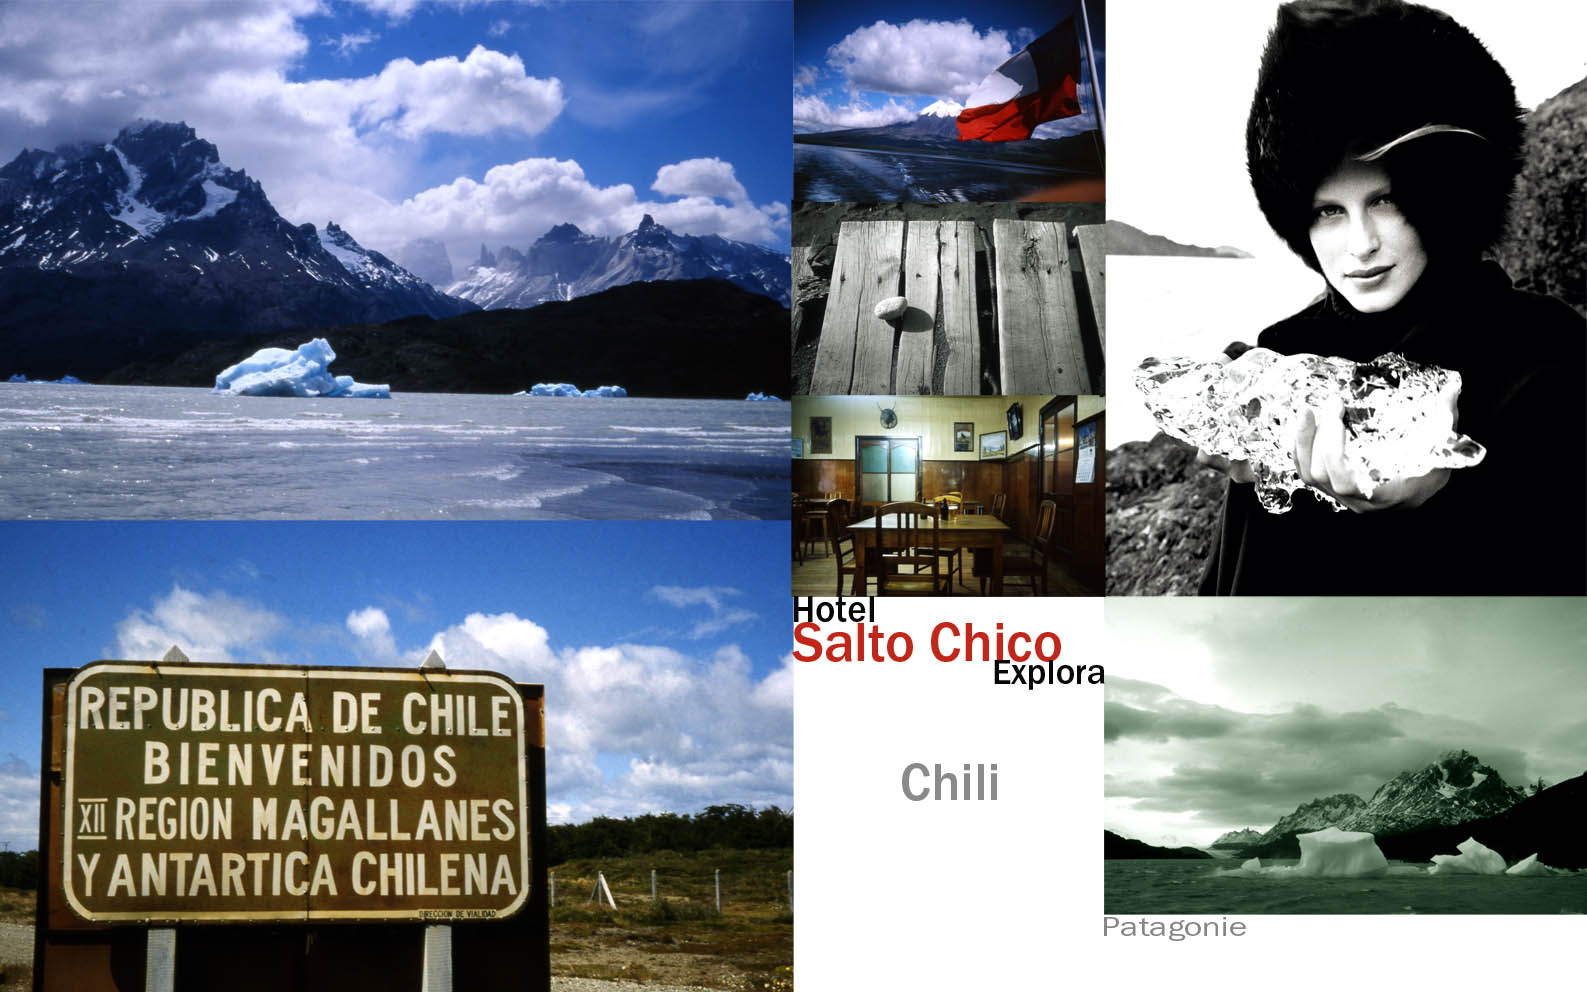 Sato Chico Chili2.jpg